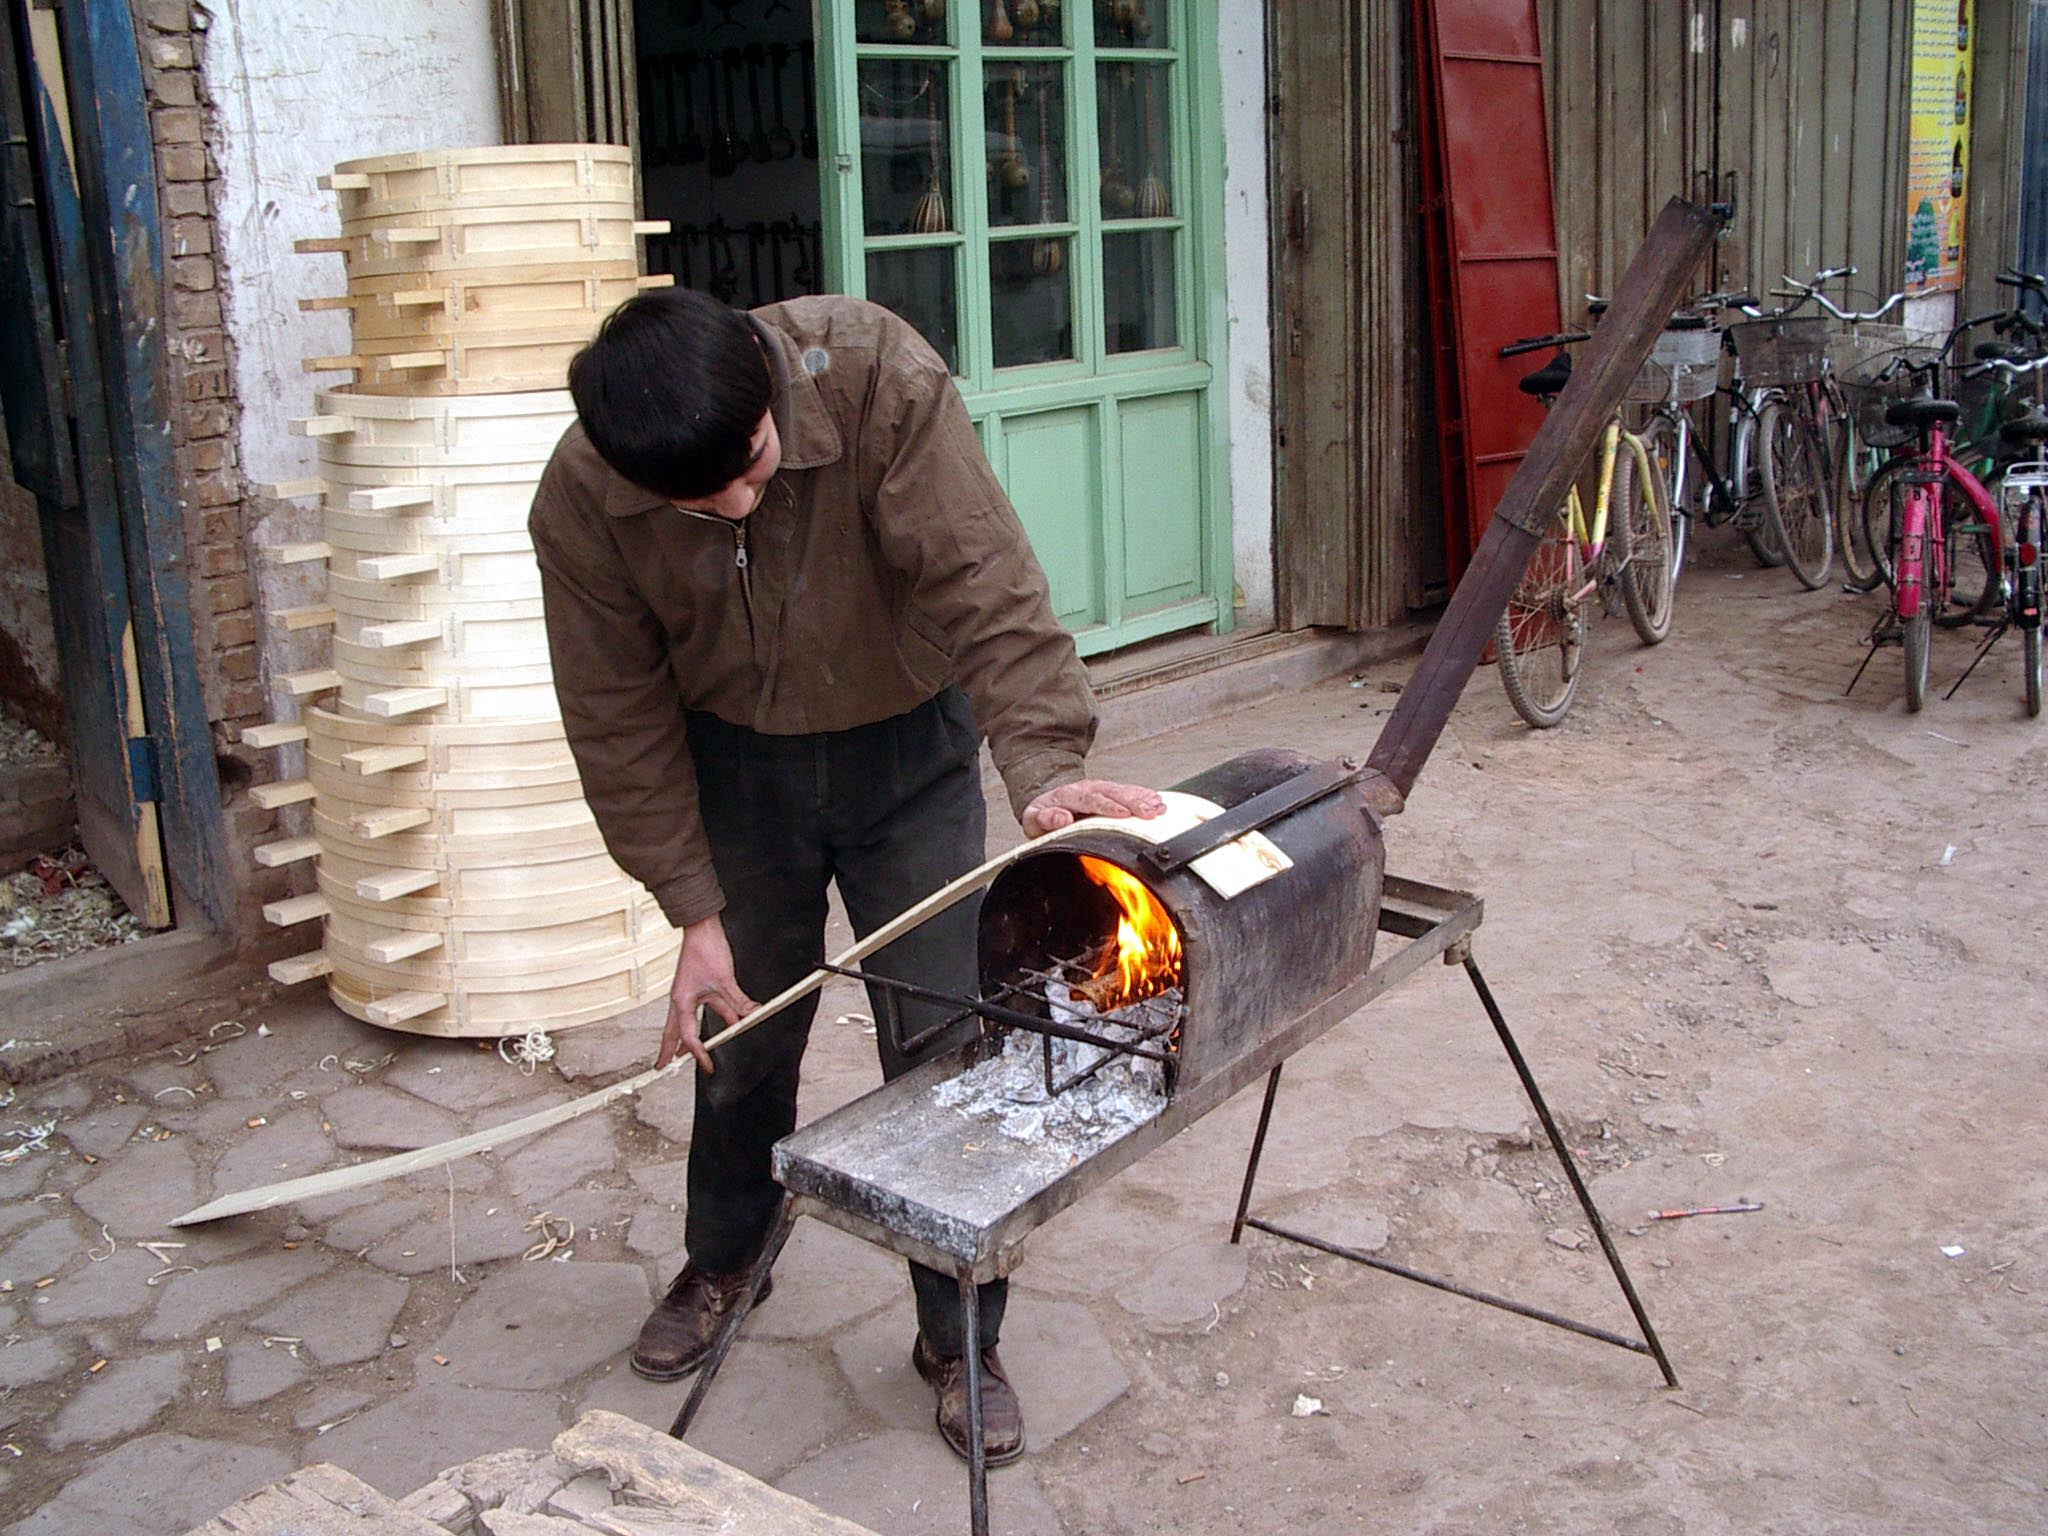 Making food-steaming baskets the simple way...fire plus wood.